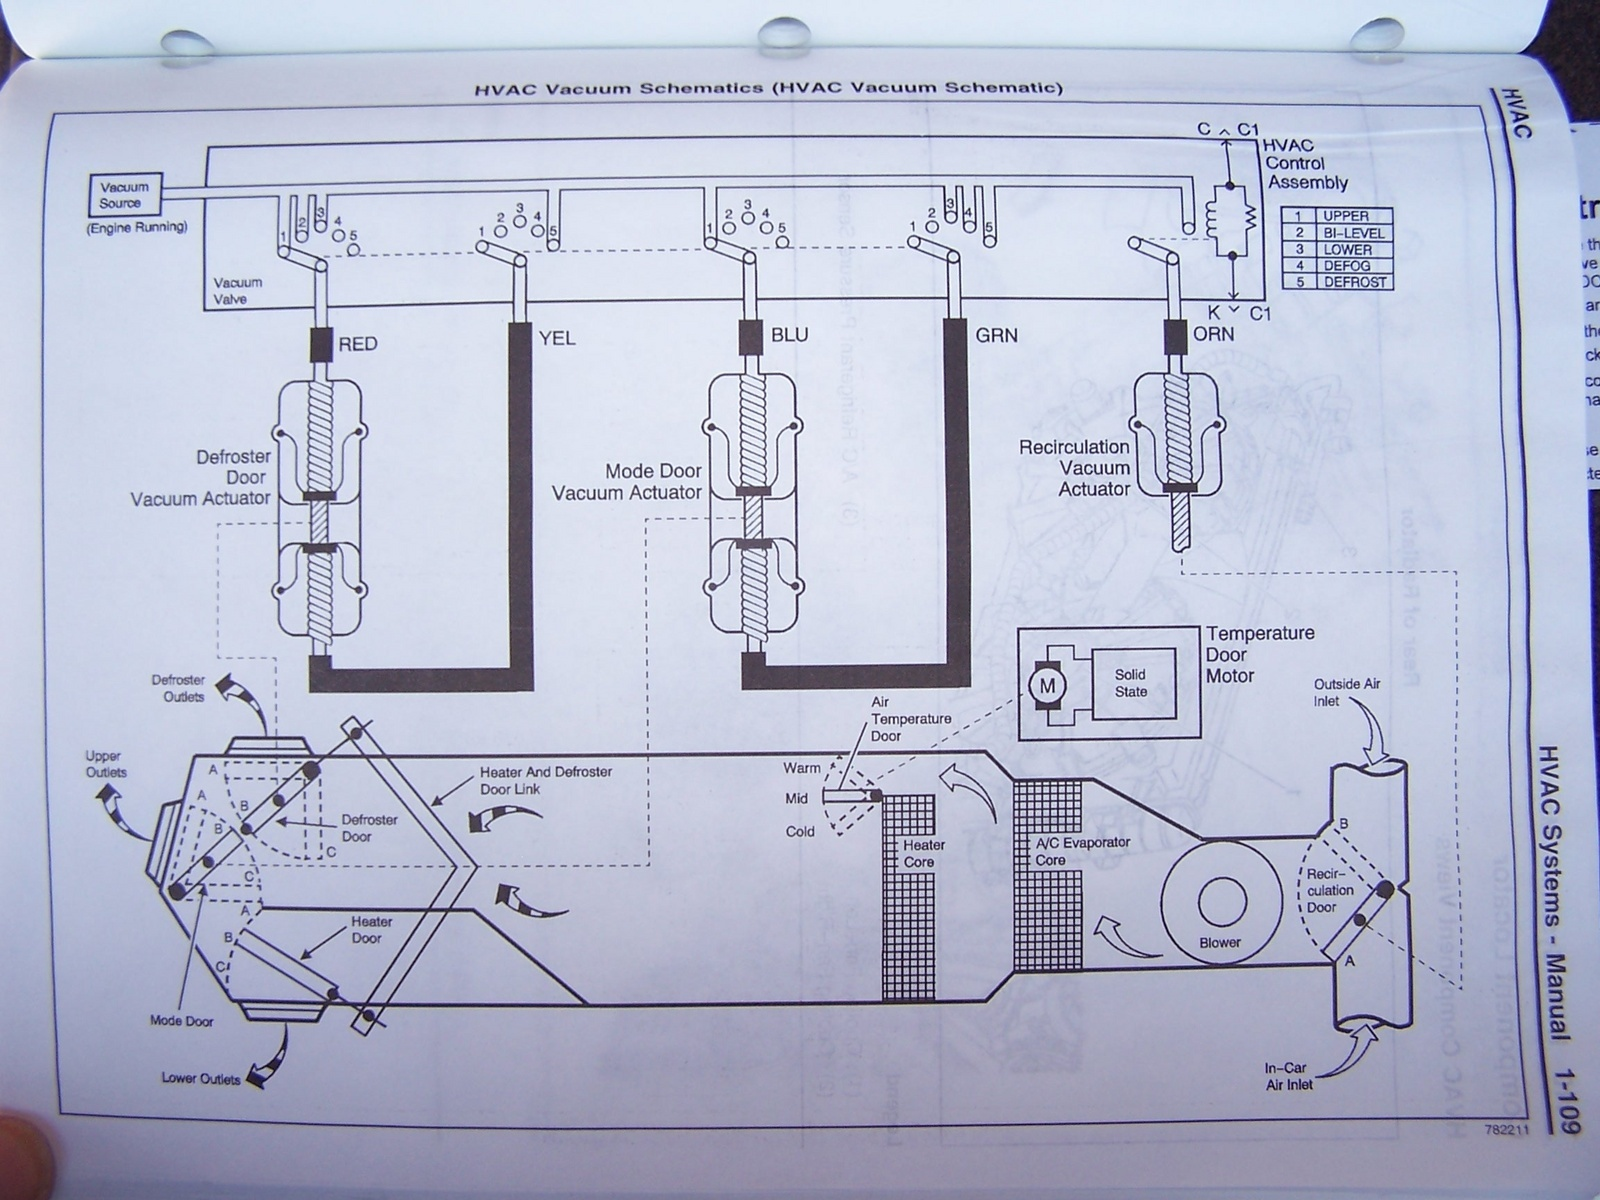 2002 Mitsubishi Diamante Passenger  partment Fuse Box Diagram likewise Nissan Caravan Fuse Box Diagram in addition Toyota Corolla 1996 Toyota Corolla Shifting together with Radiator Hose Diagram further Page2. on 2000 lincoln ls wiring diagram